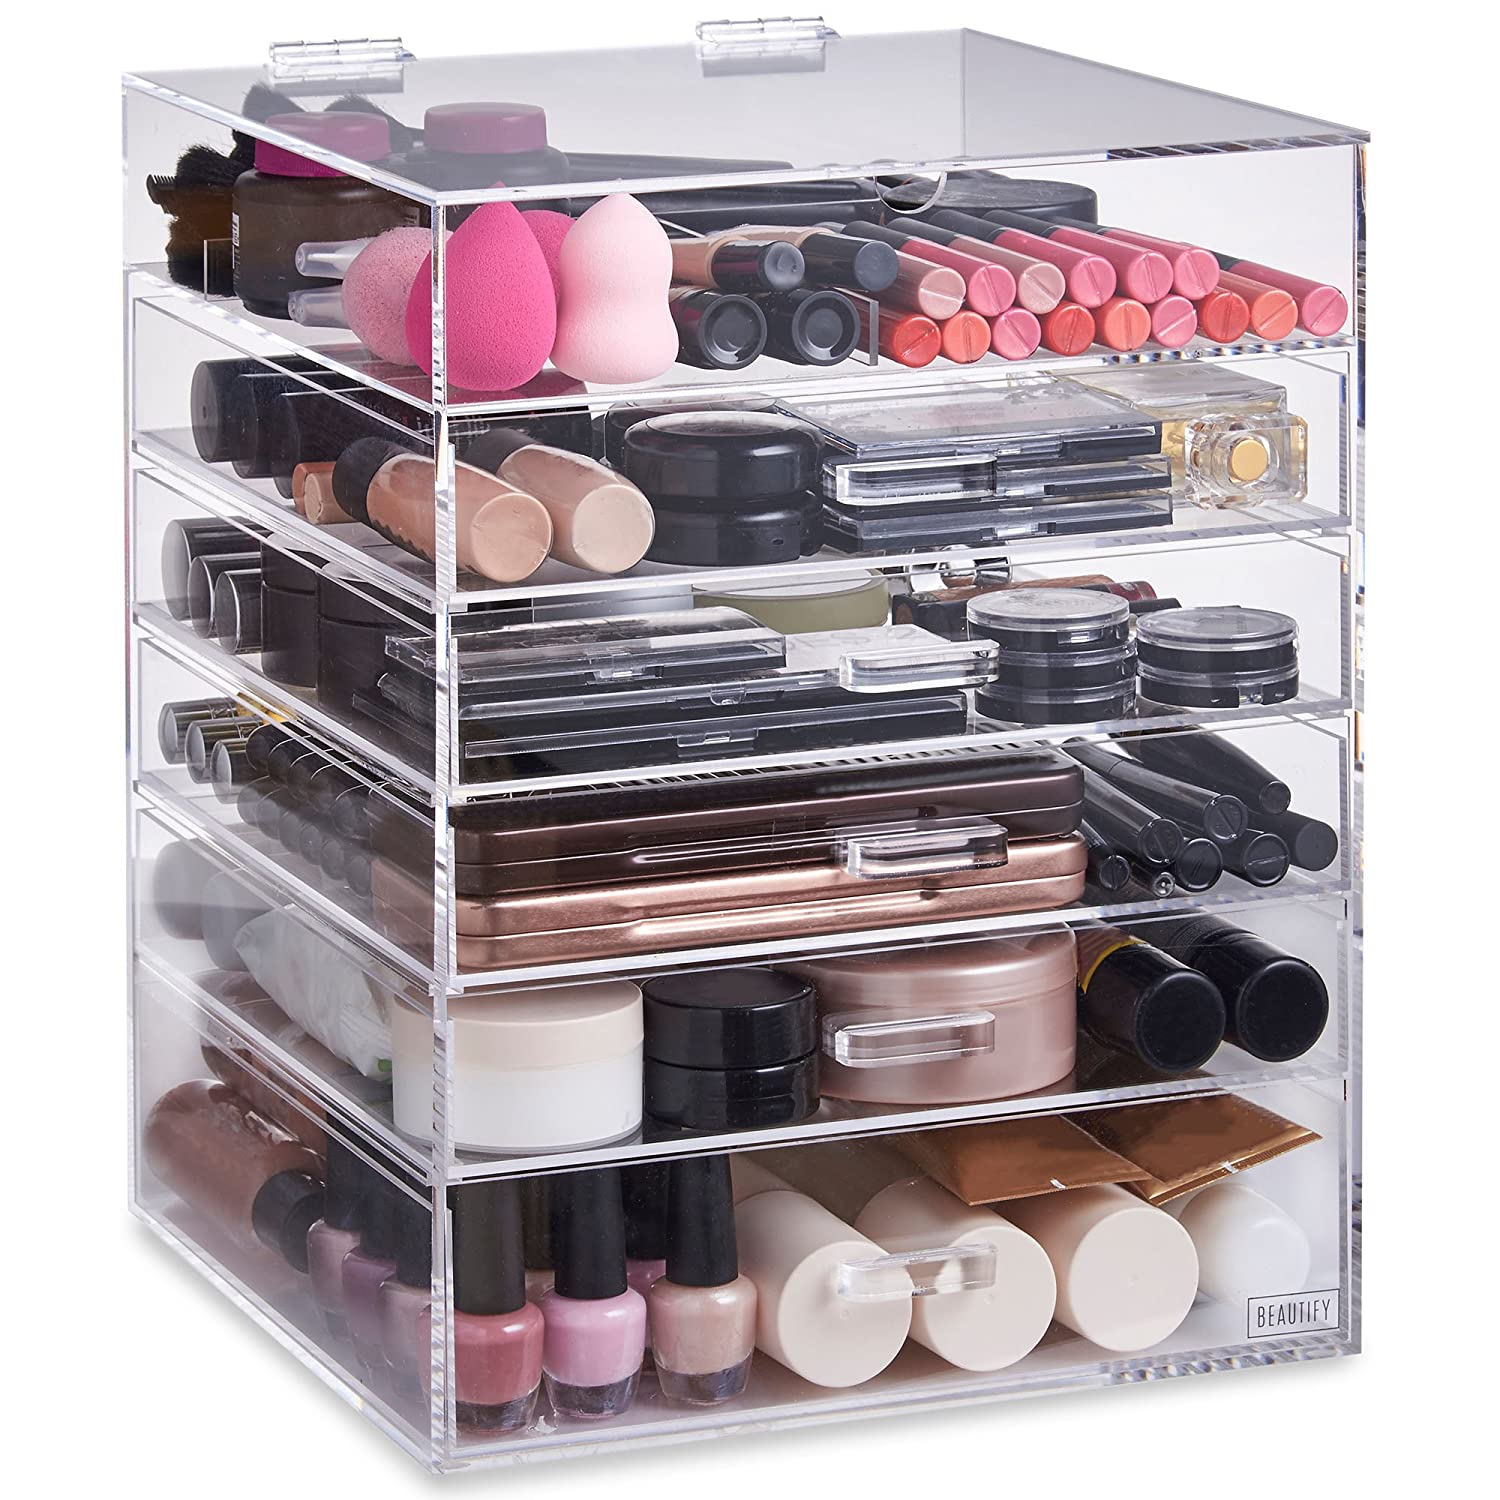 Beautify Large Acrylic Cosmetic Organiser Clear Makeup Beauty Storage Cube With 5 Drawers 6 Tier & Removable Divider 10045